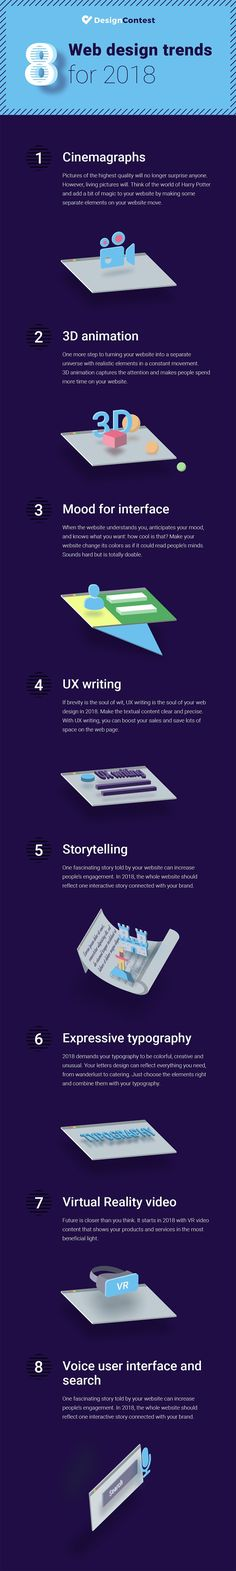 8 Web Design Trends for Your Business in 2018 [Infographic]